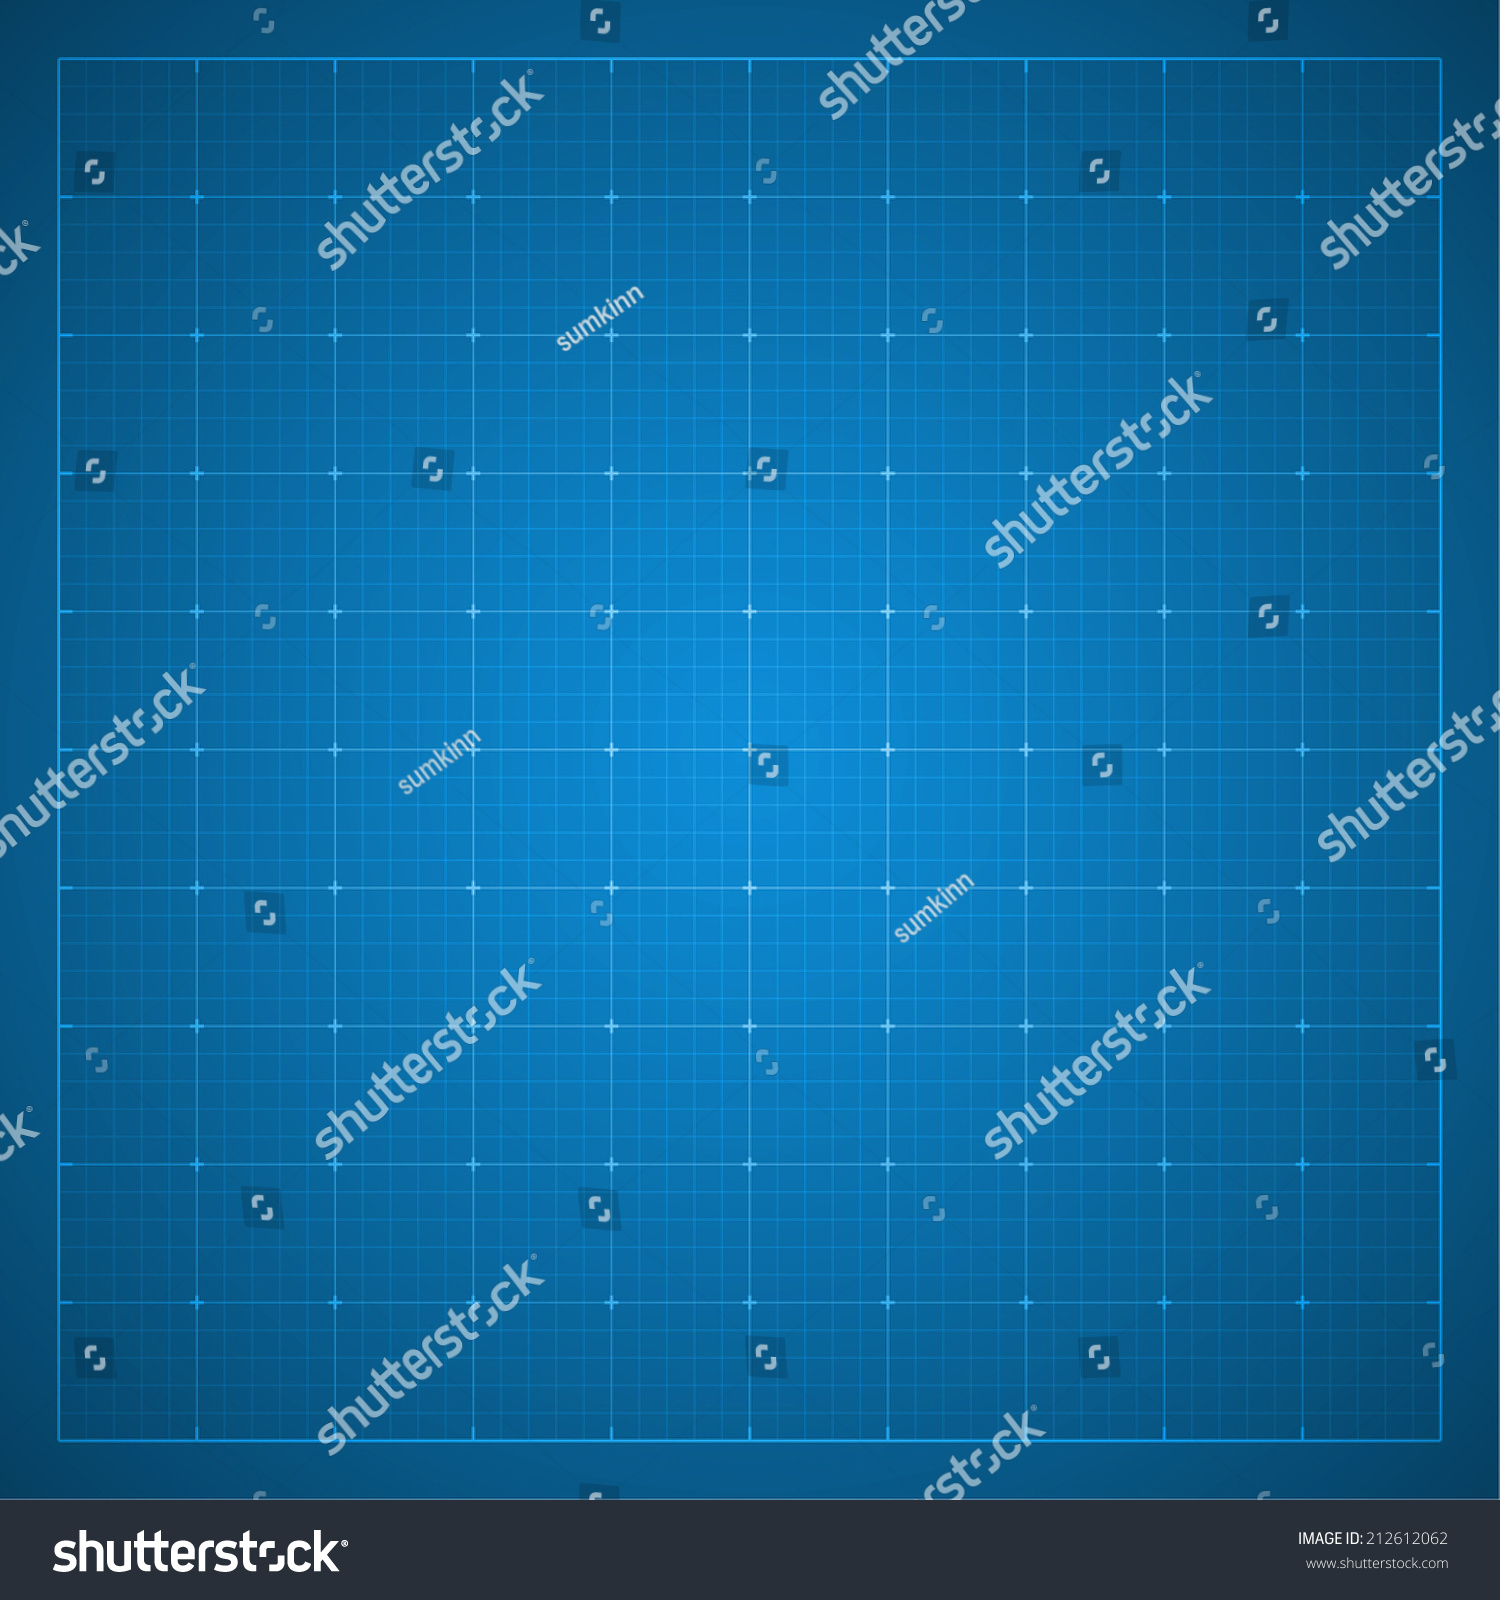 Paper blueprint background drawing paper architectural vectores en paper blueprint background drawing paper for architectural engineering design work vector malvernweather Gallery